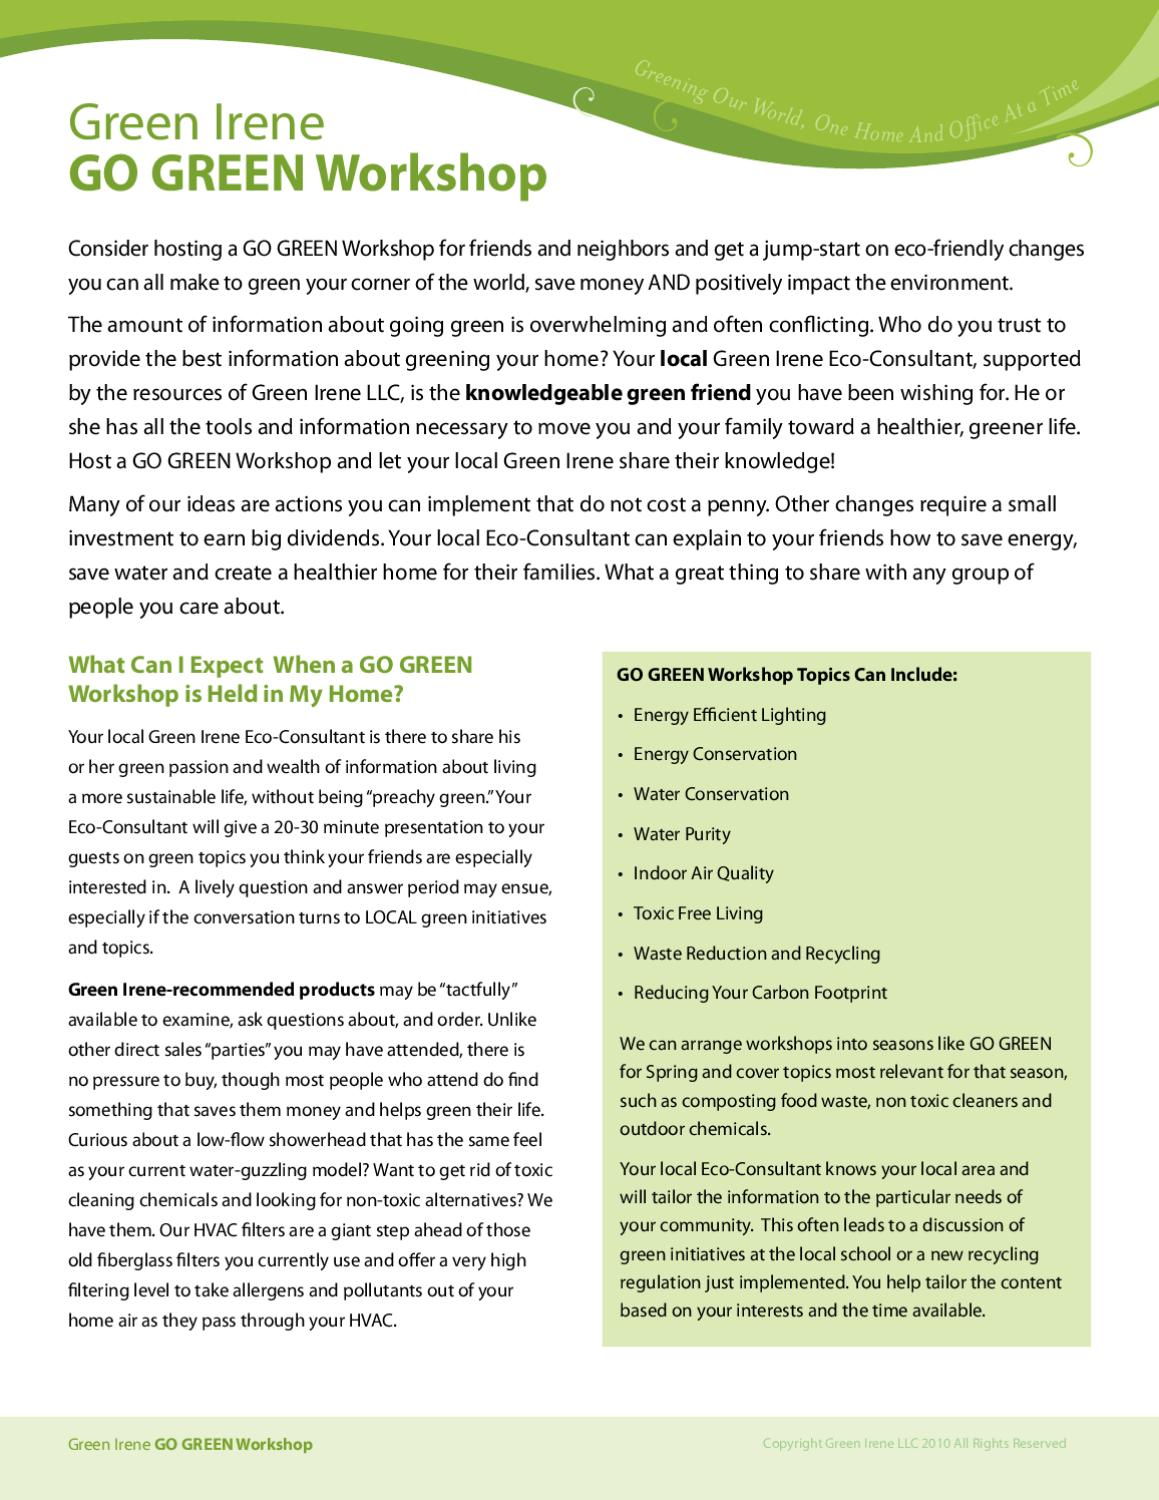 Go Green Workshop Brochure | Green Irene by Honest Green